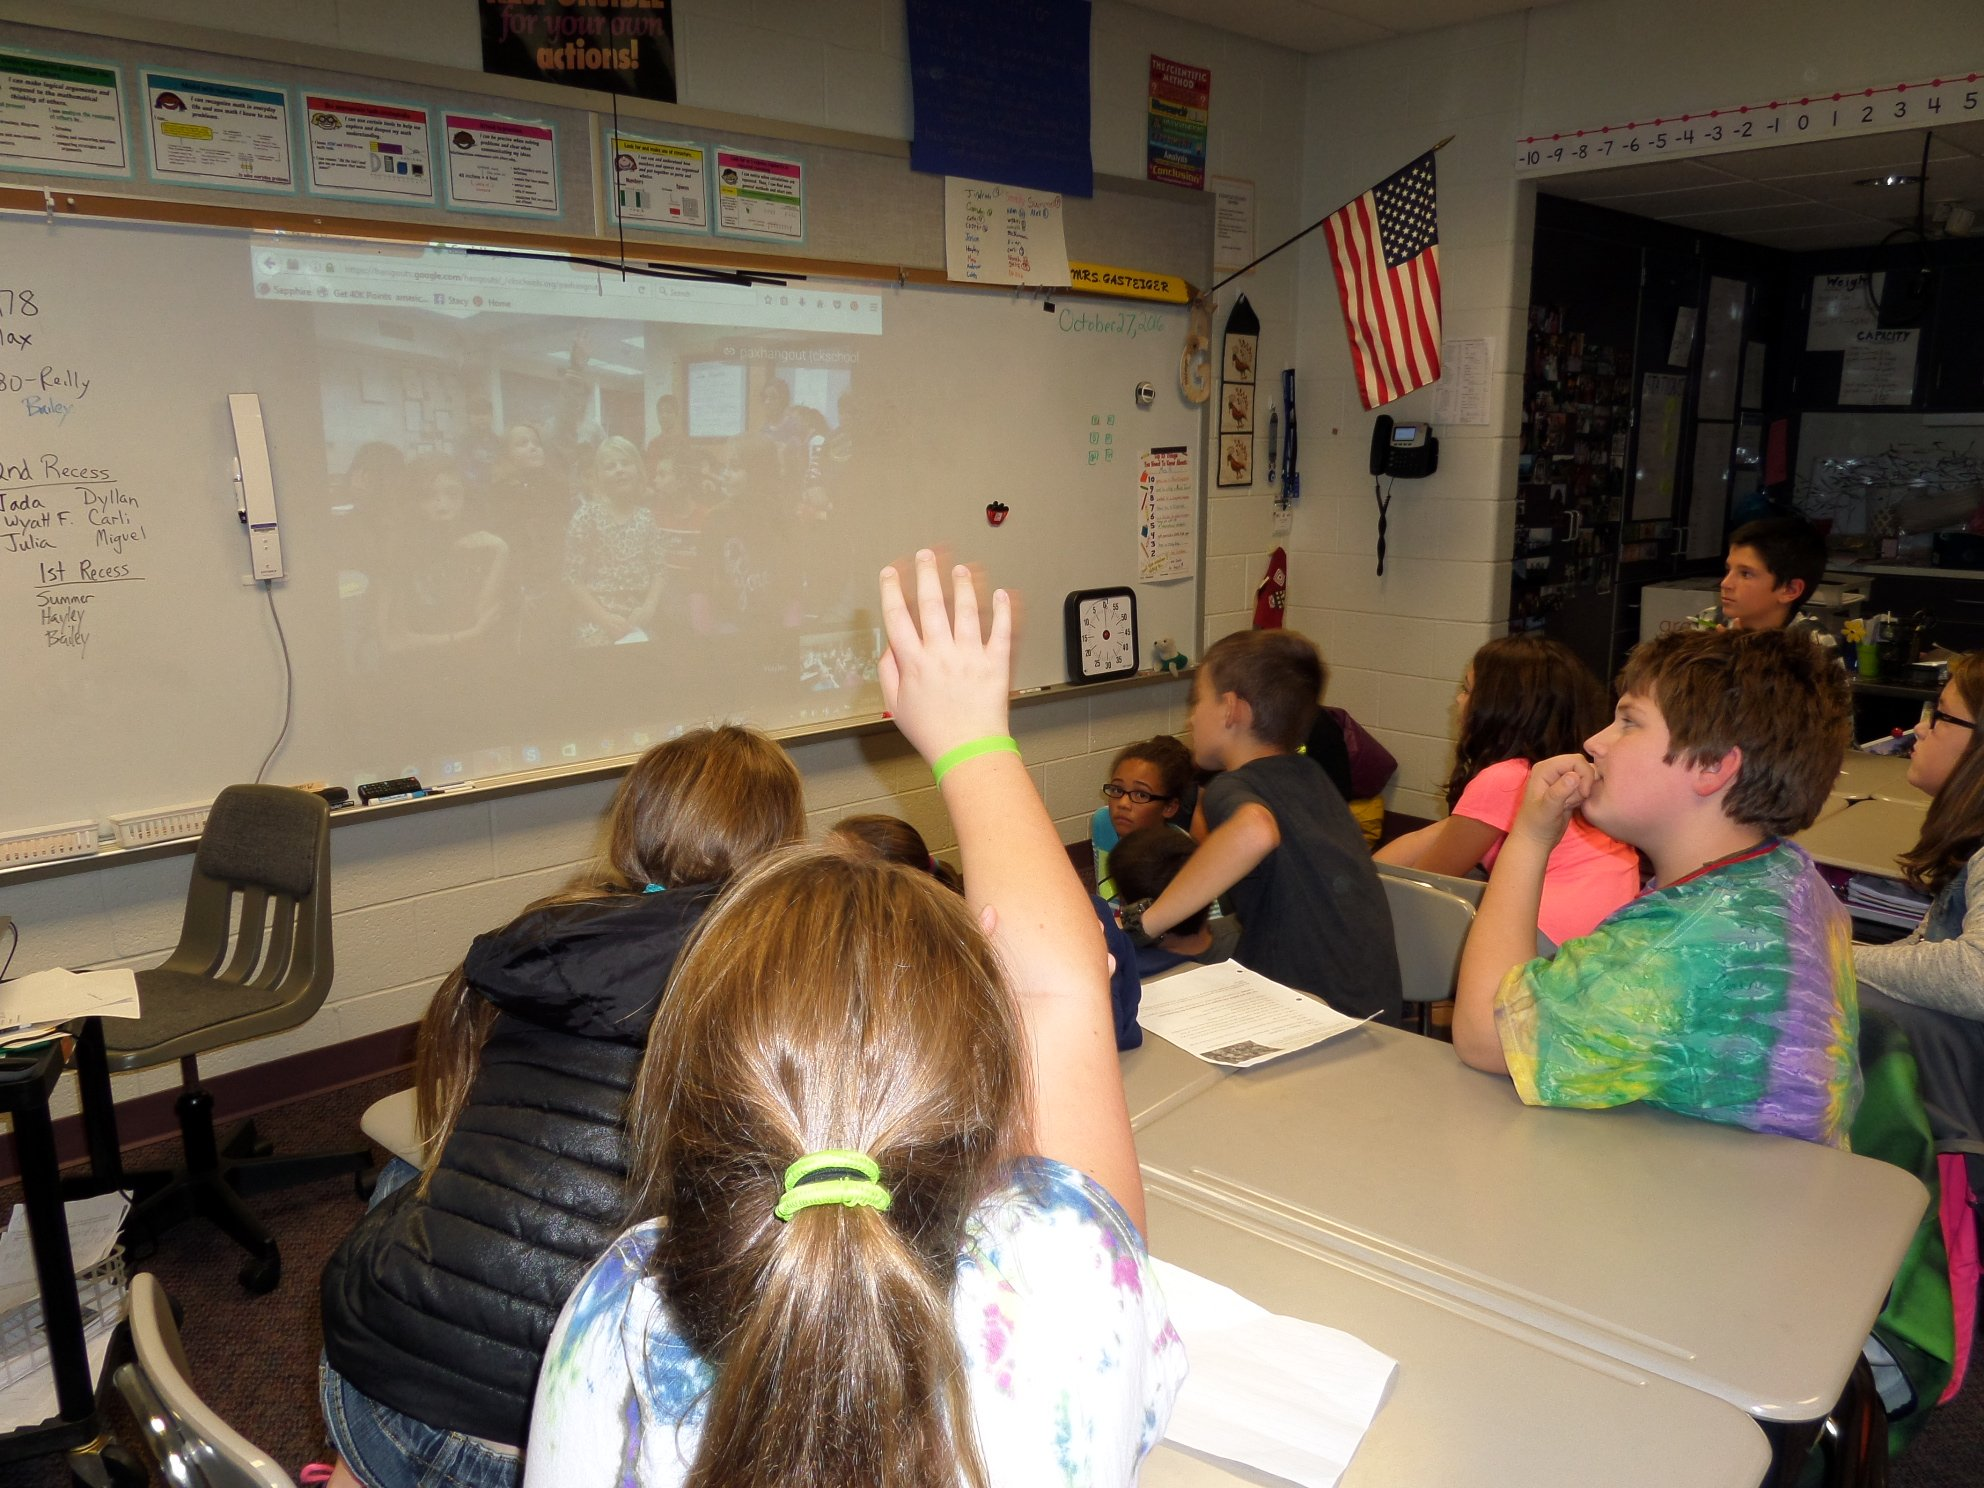 Video chatted with our WA partner. Ss jealous they live by the ocean, but not sorry to miss all the rain there. #GRA16 #GRAPax https://t.co/W623Tw31Fb